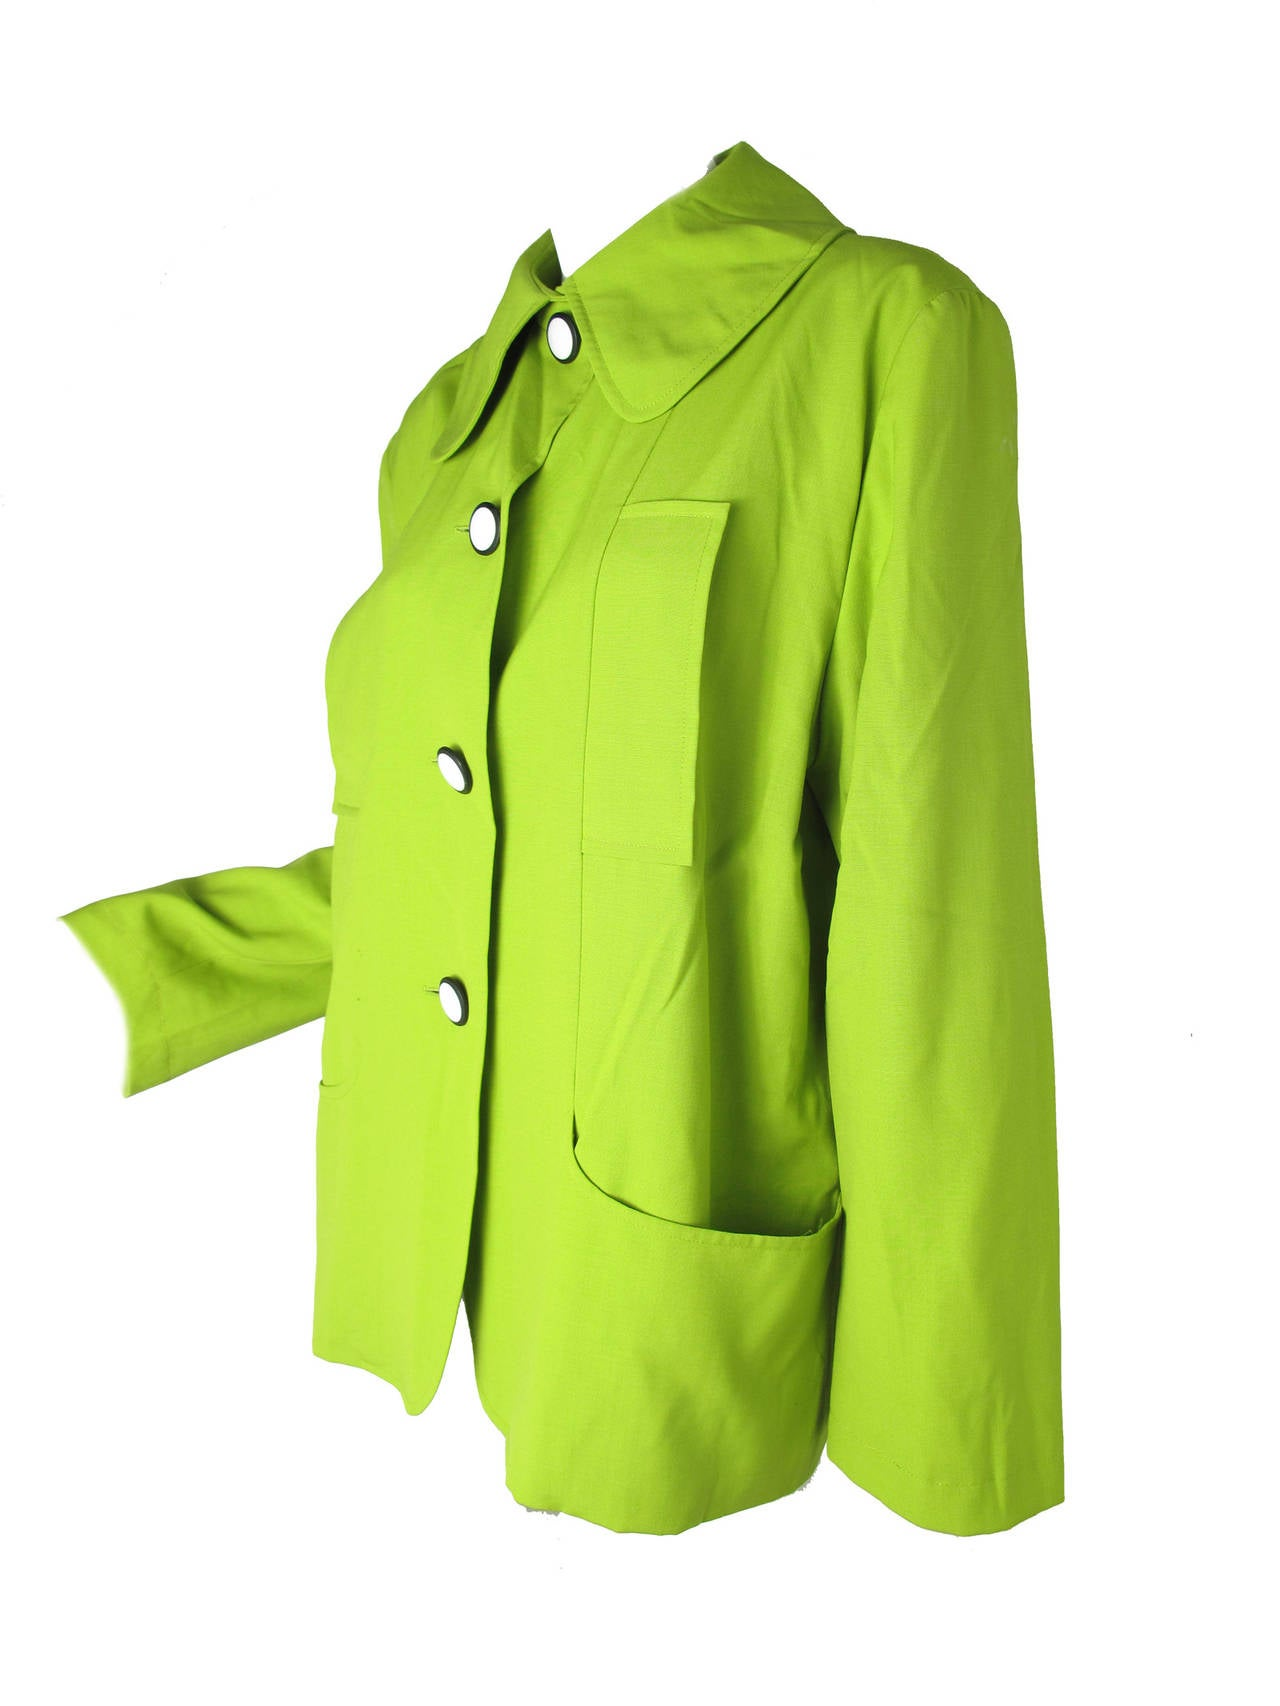 1990s Christian Lacroix Neon Green Jacket In Excellent Condition For Sale In Austin, TX